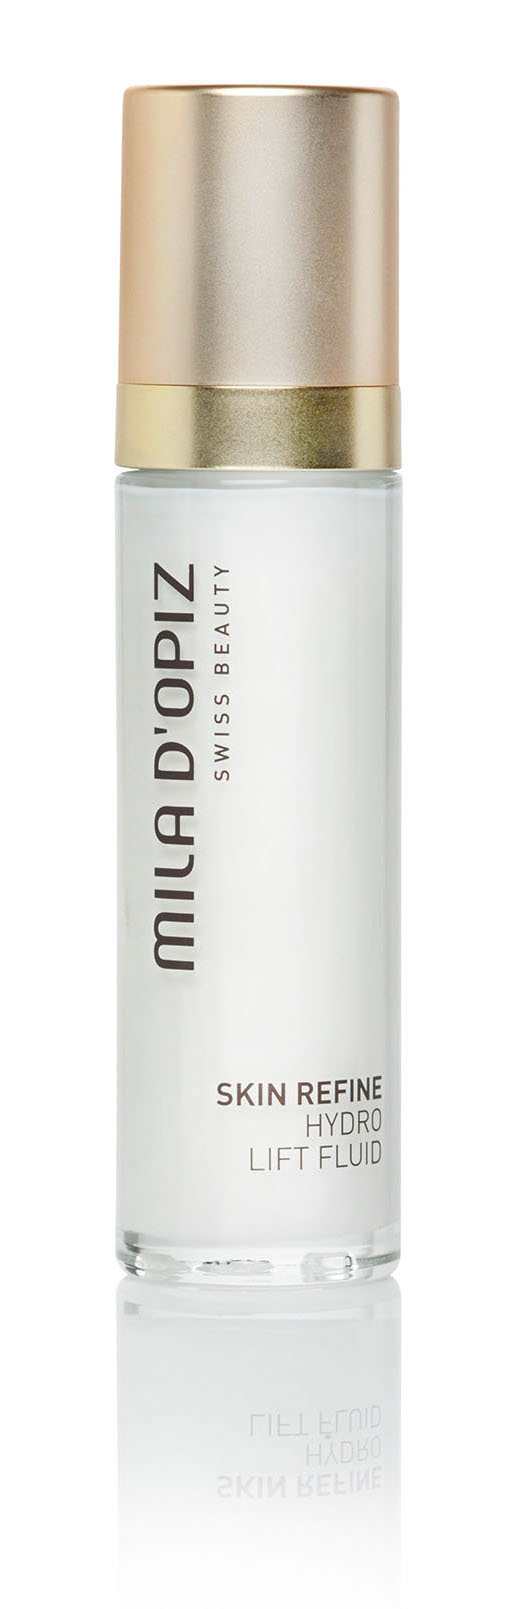 Skin Refine Hydro Lift Fluid with UV Protection